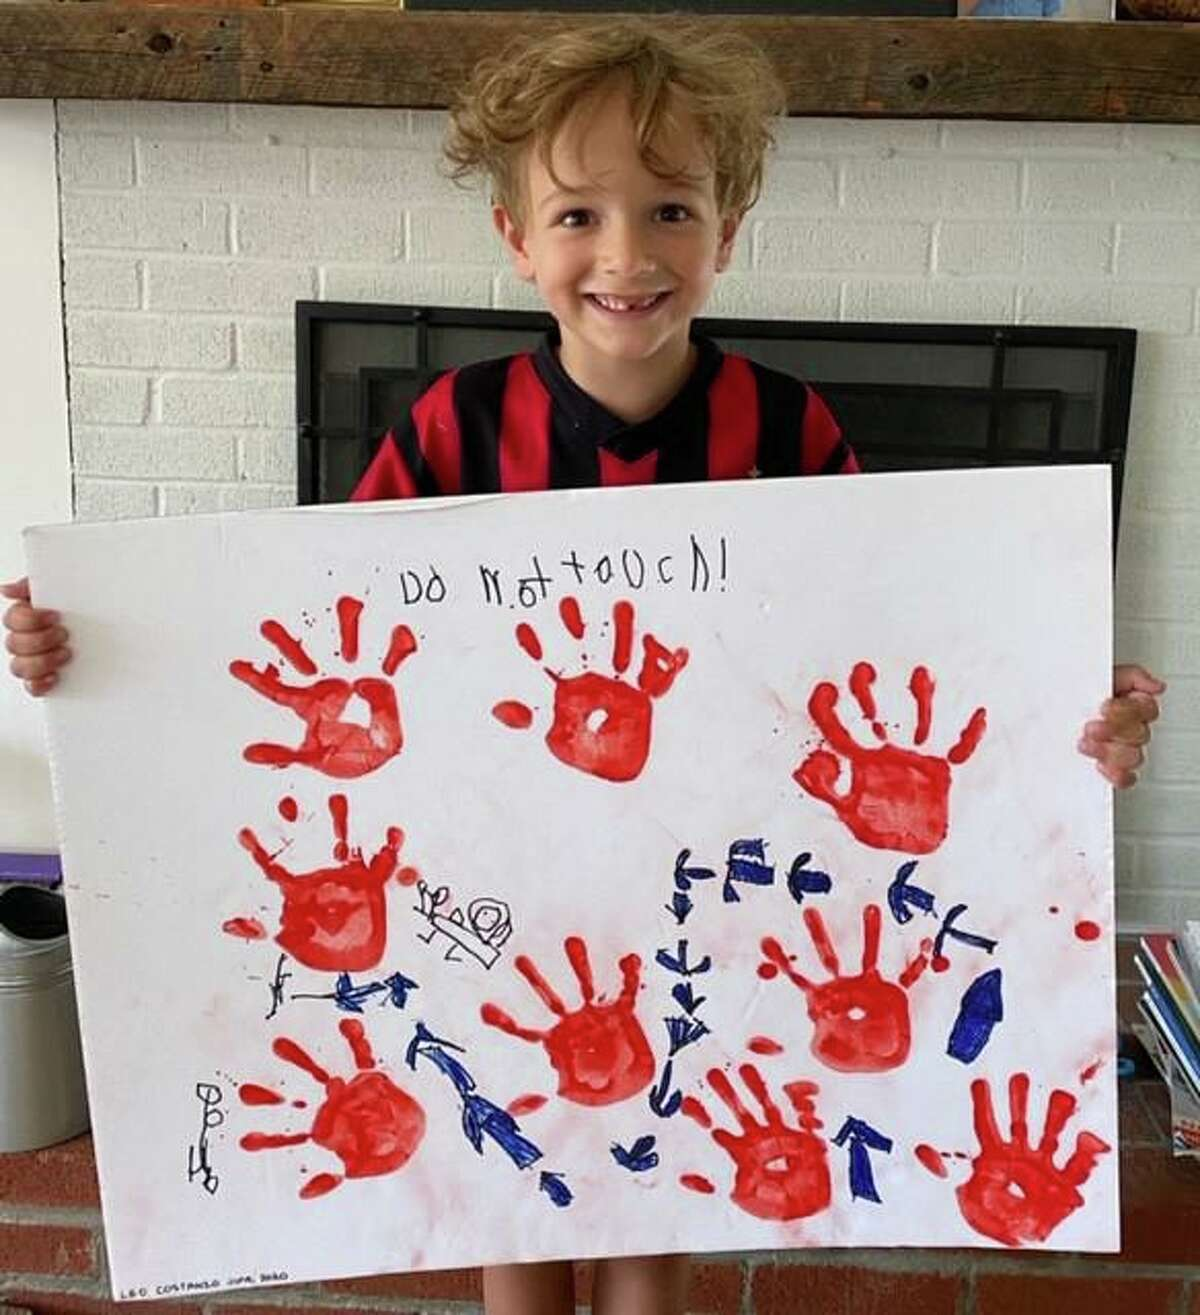 Kindergartner Leonardo Costanzo with his award-winning entry in a 2020 Bruce Museum art contest seeking a response to the prompt: